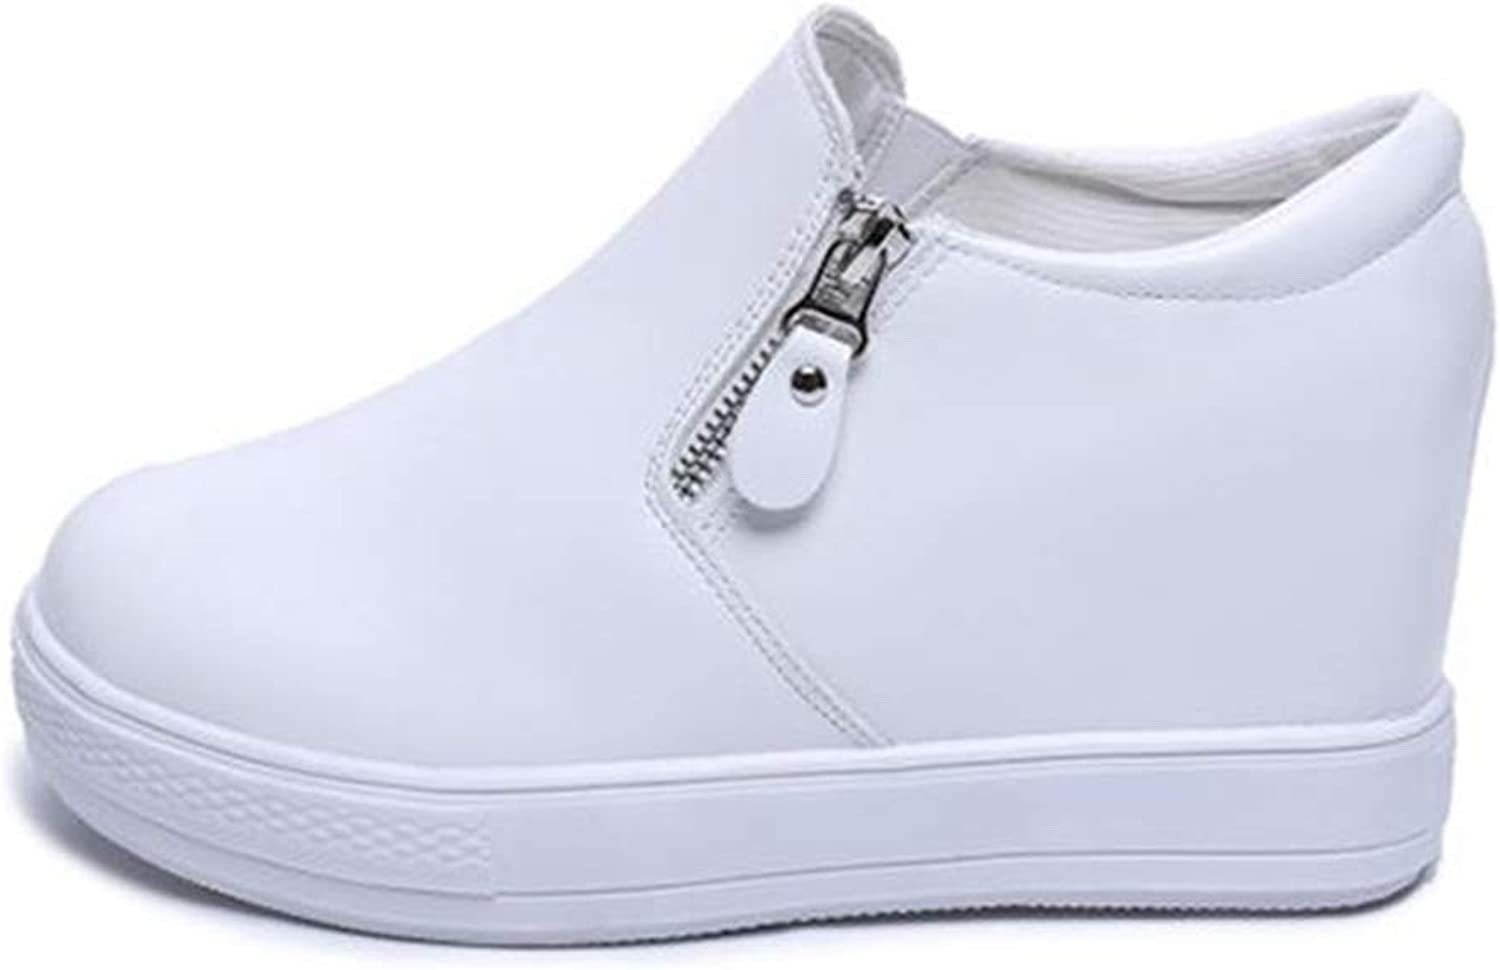 T-JULY Women's Hidden Heel Casual Platform shoes White Black shoes for Women Height Increasing Wedges shoes Sneakers